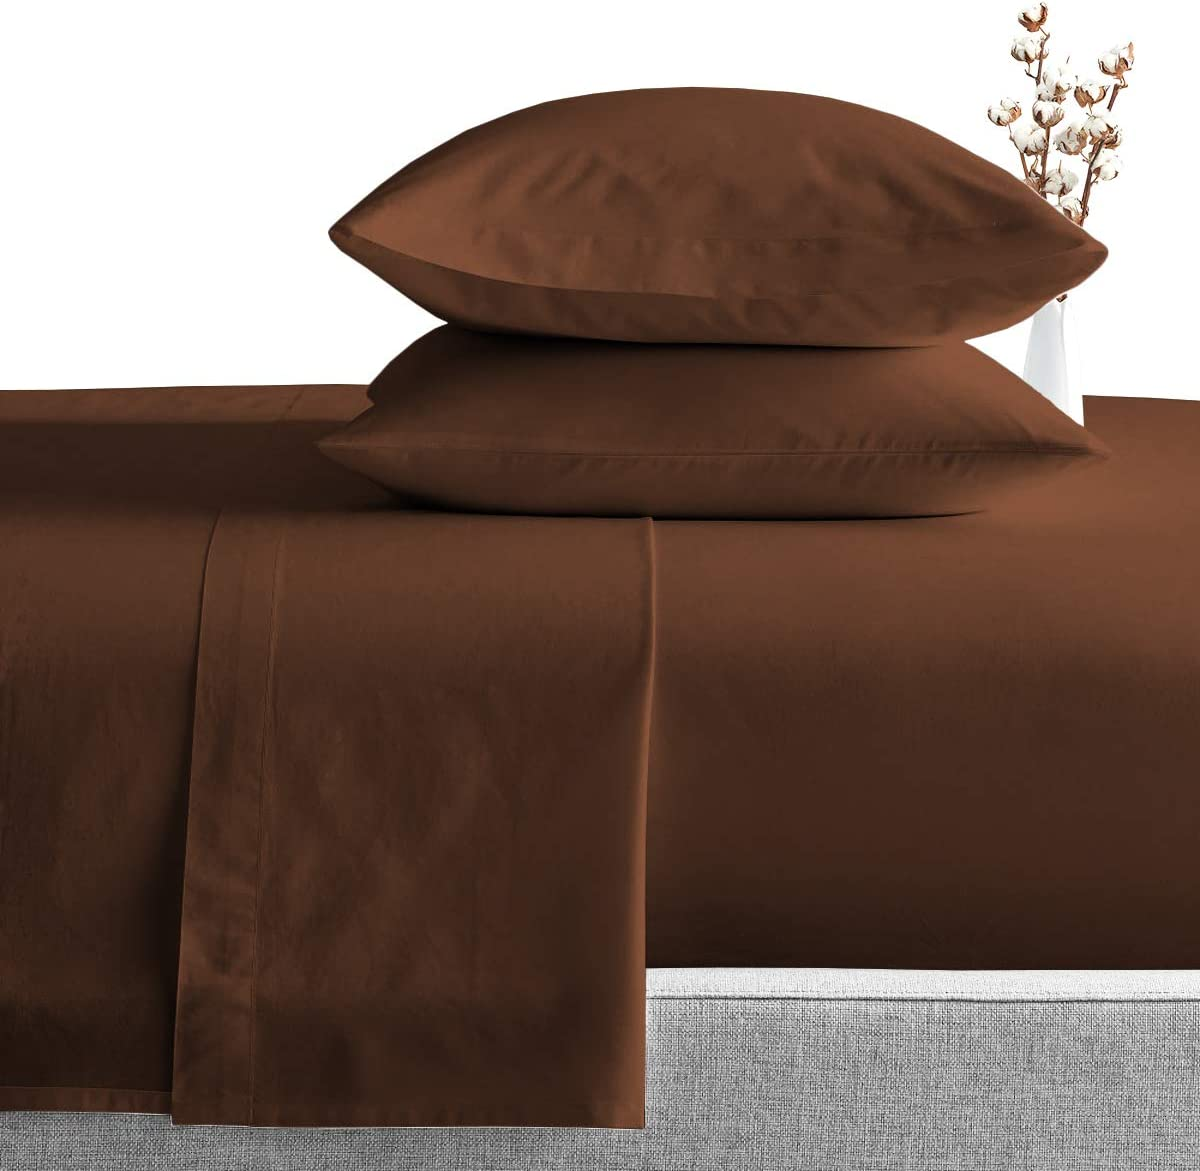 SGI bedding Full Size Sheets Special 1 year warranty price for a limited time Luxury Cotton - Egyptian Soft 100%